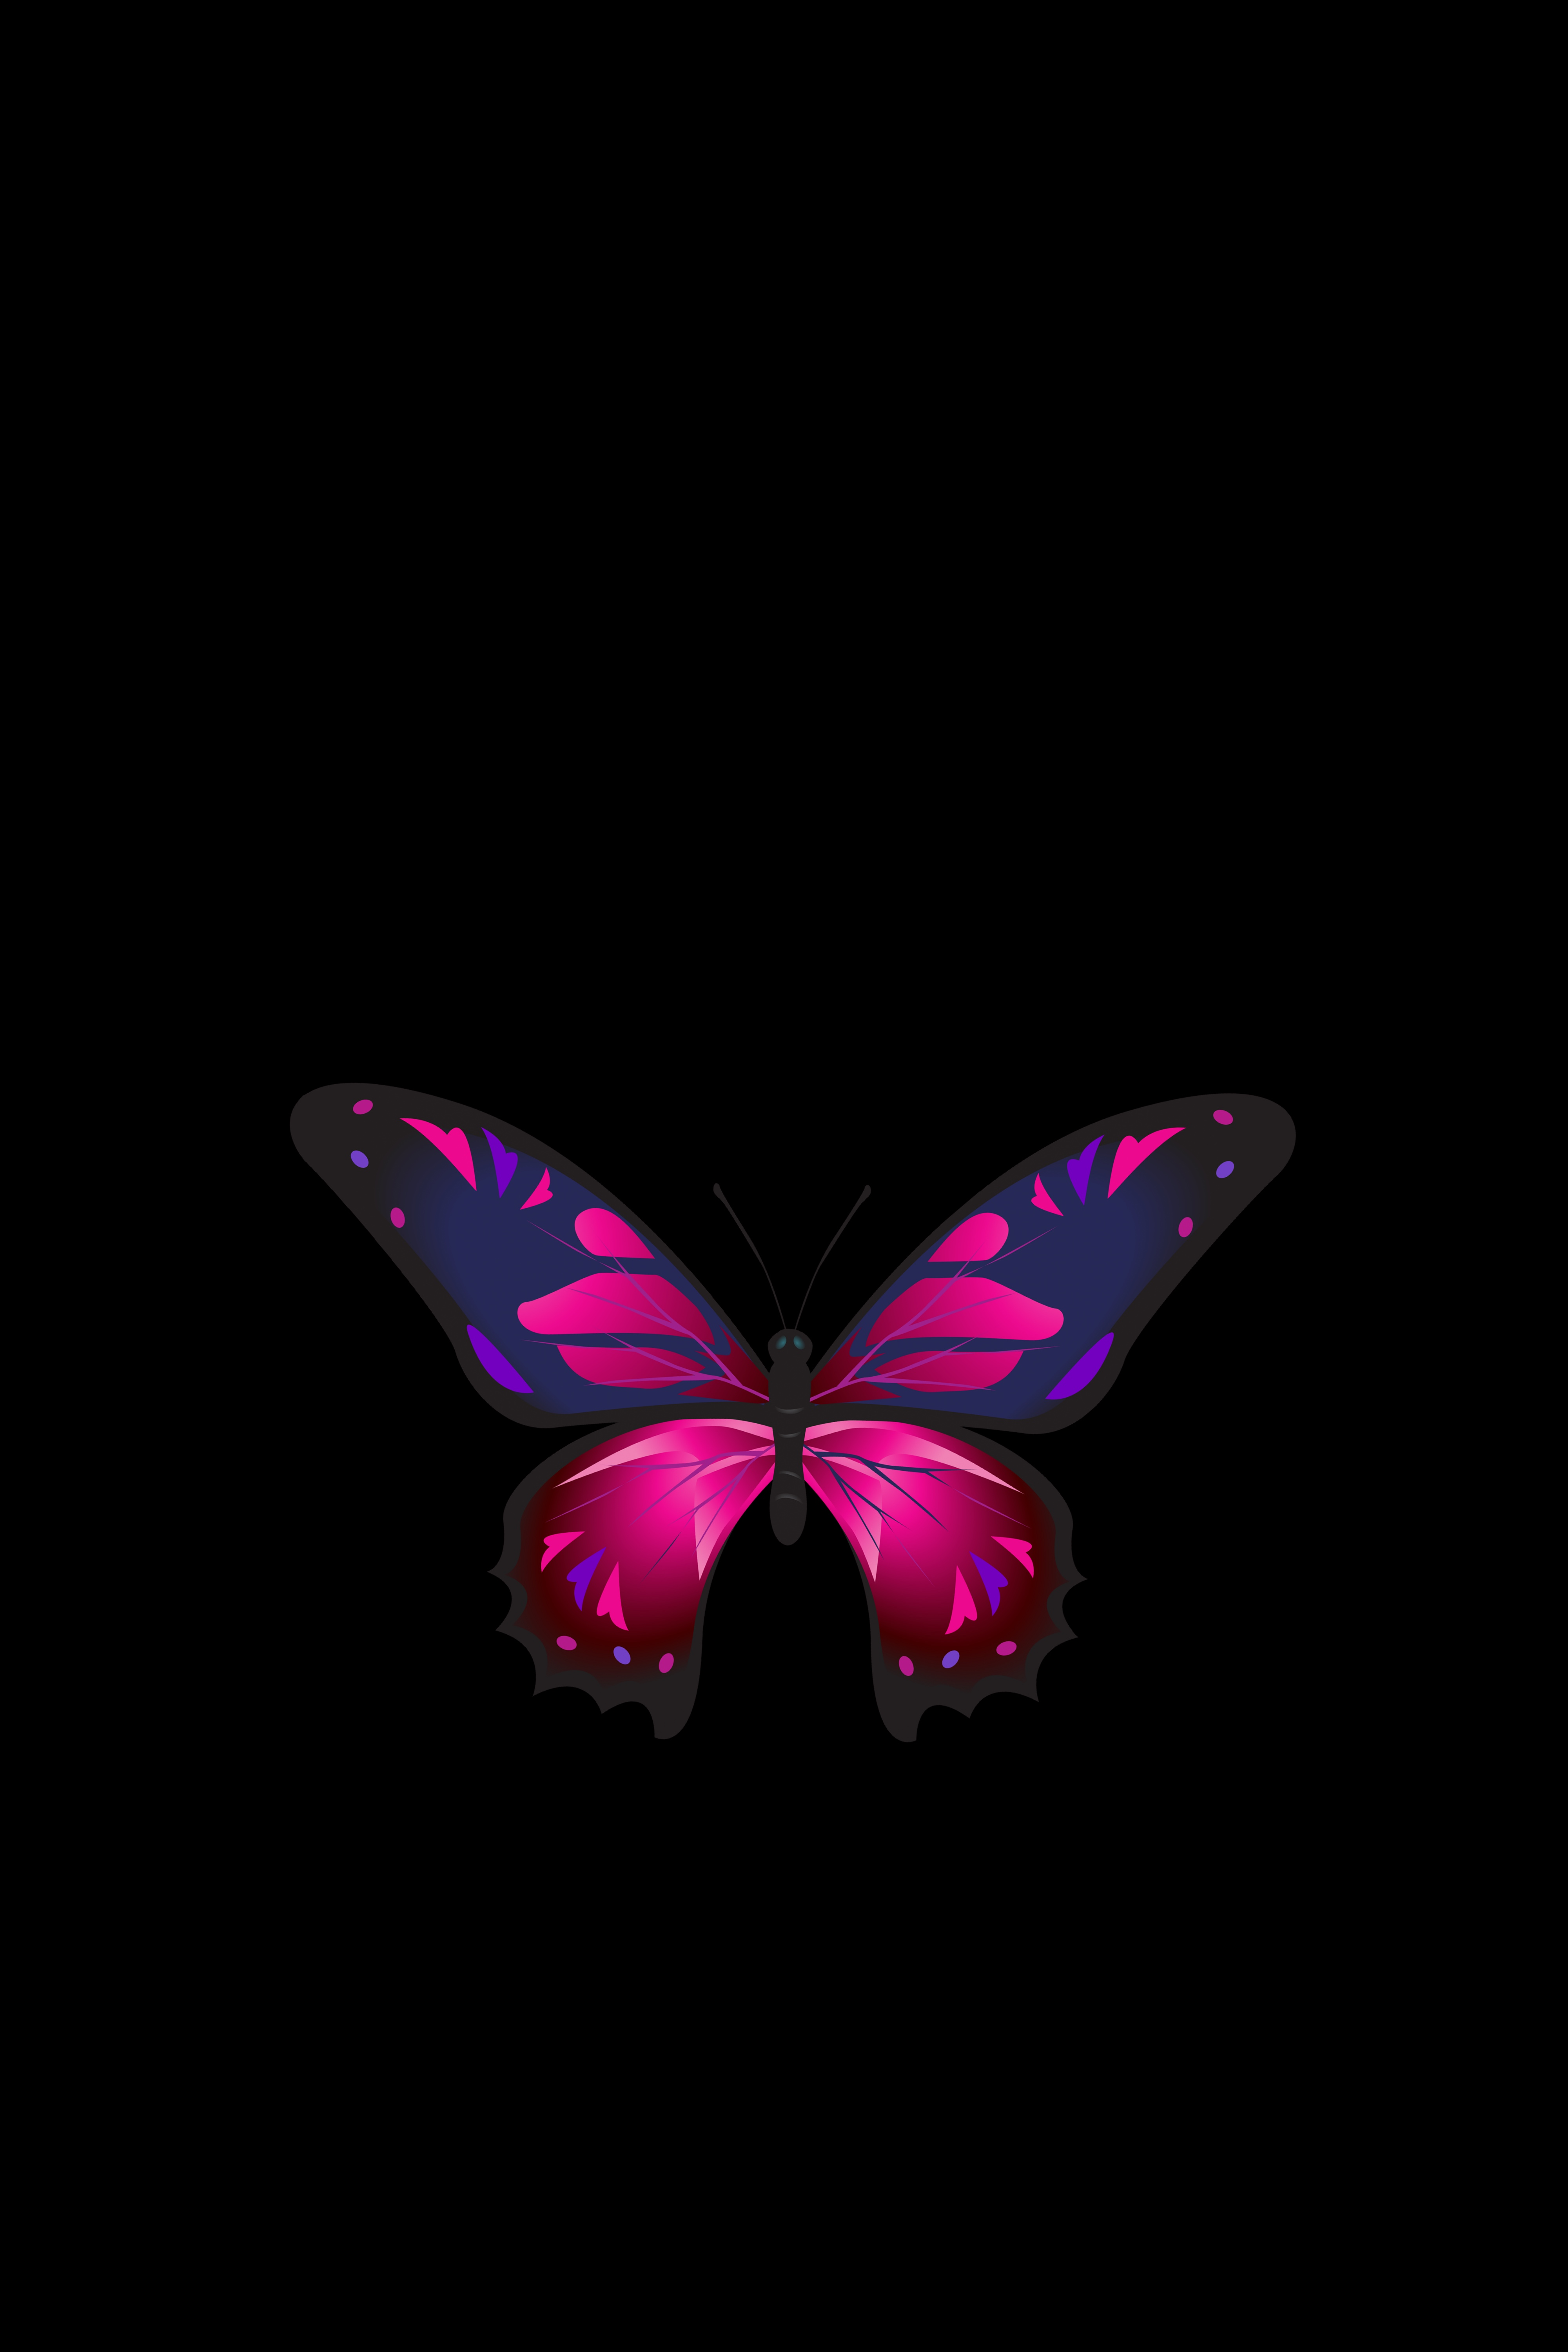 131801 download wallpaper Patterns, Dark, Dark Background, Butterfly, Wings screensavers and pictures for free